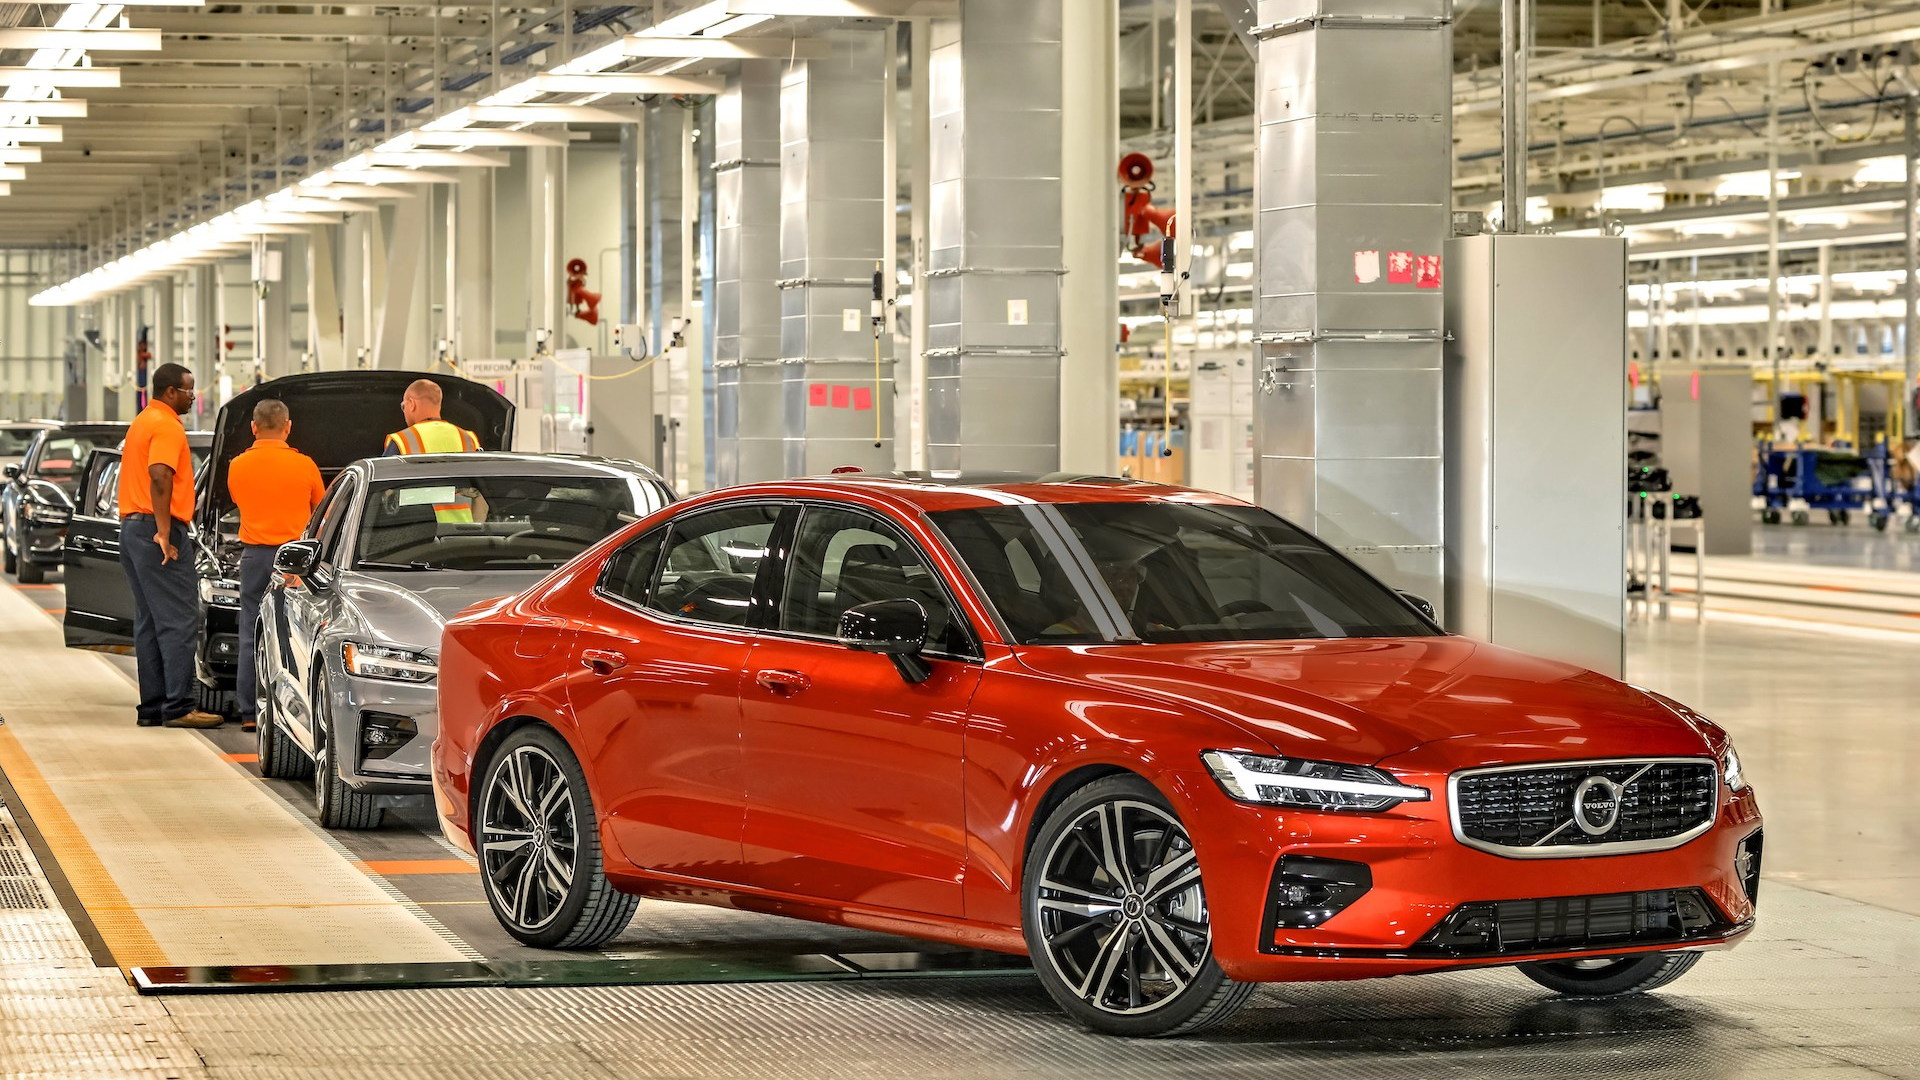 Motor Authority builds a 2019 Volvo S60